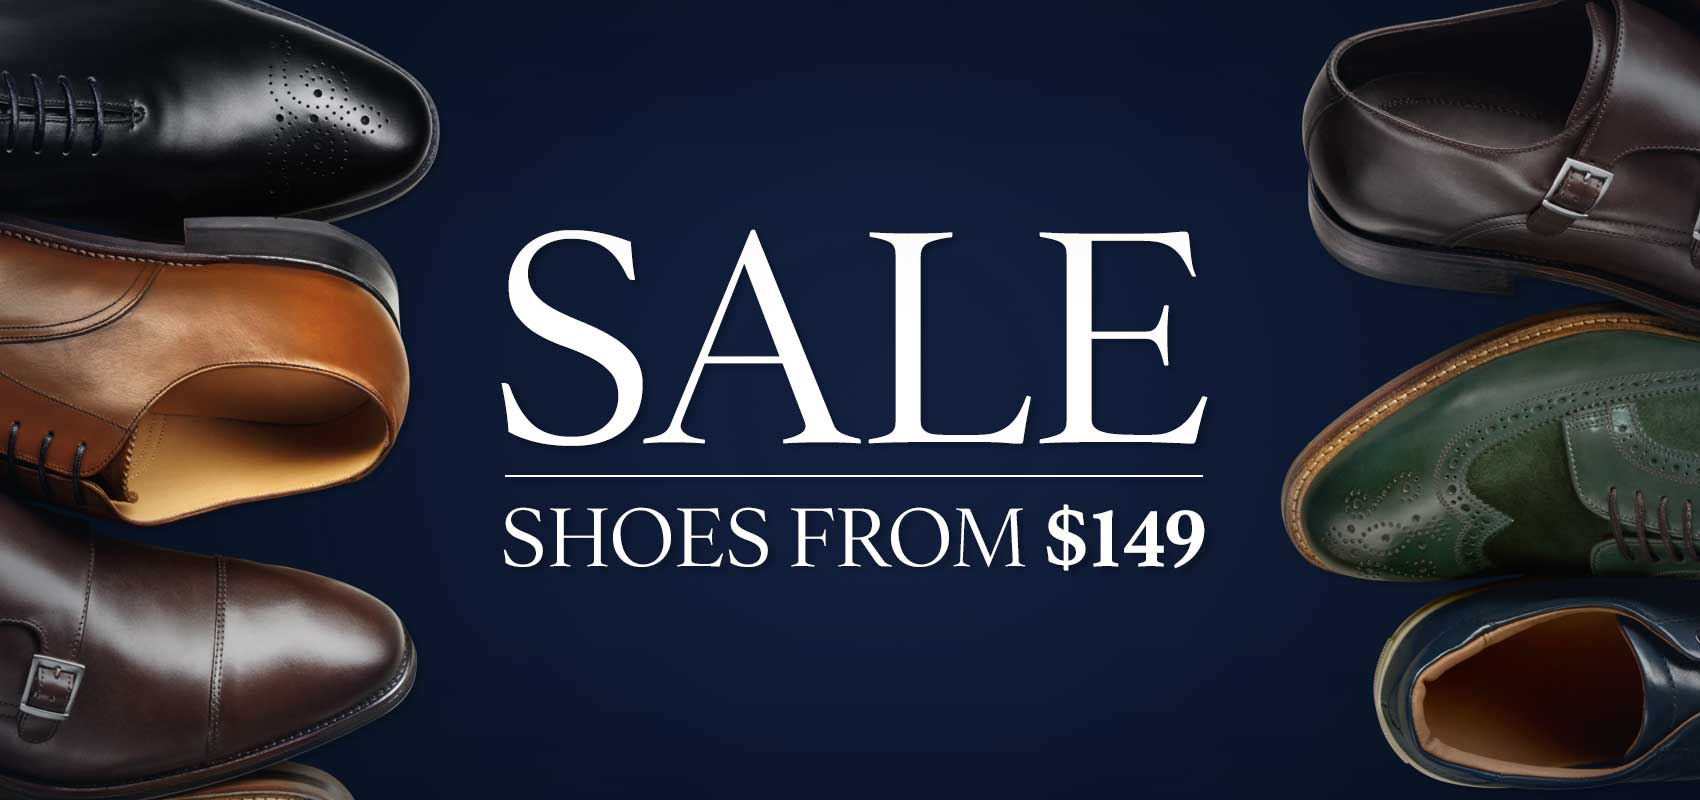 Charles Tyrwhitt Shoe Sale from $149